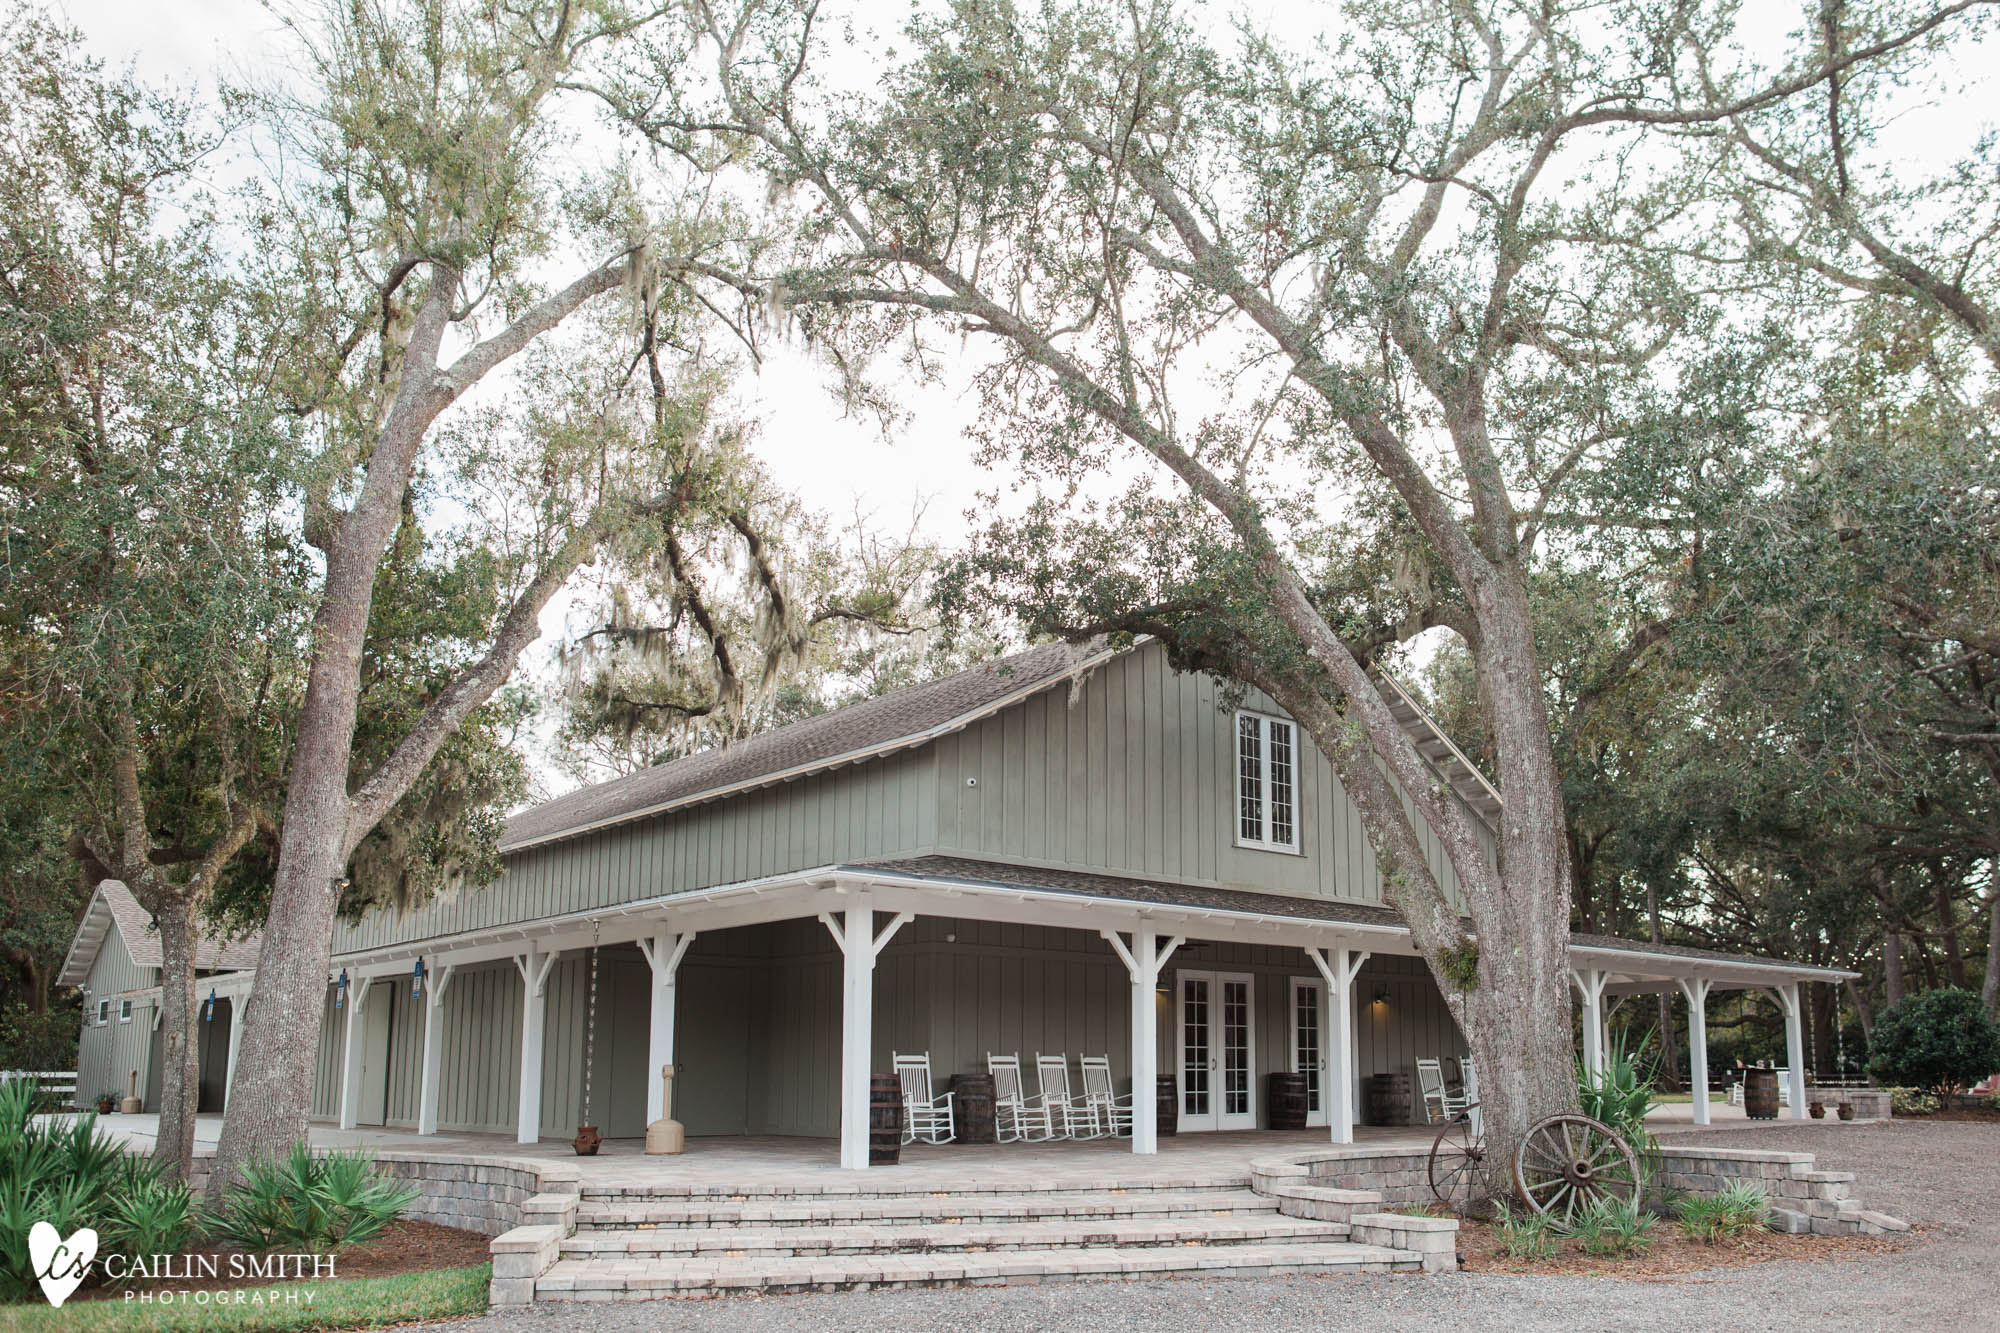 Sylvia_Anthony_Bowing_Oaks_Plantation_Wedding_Photography_0001.jpg